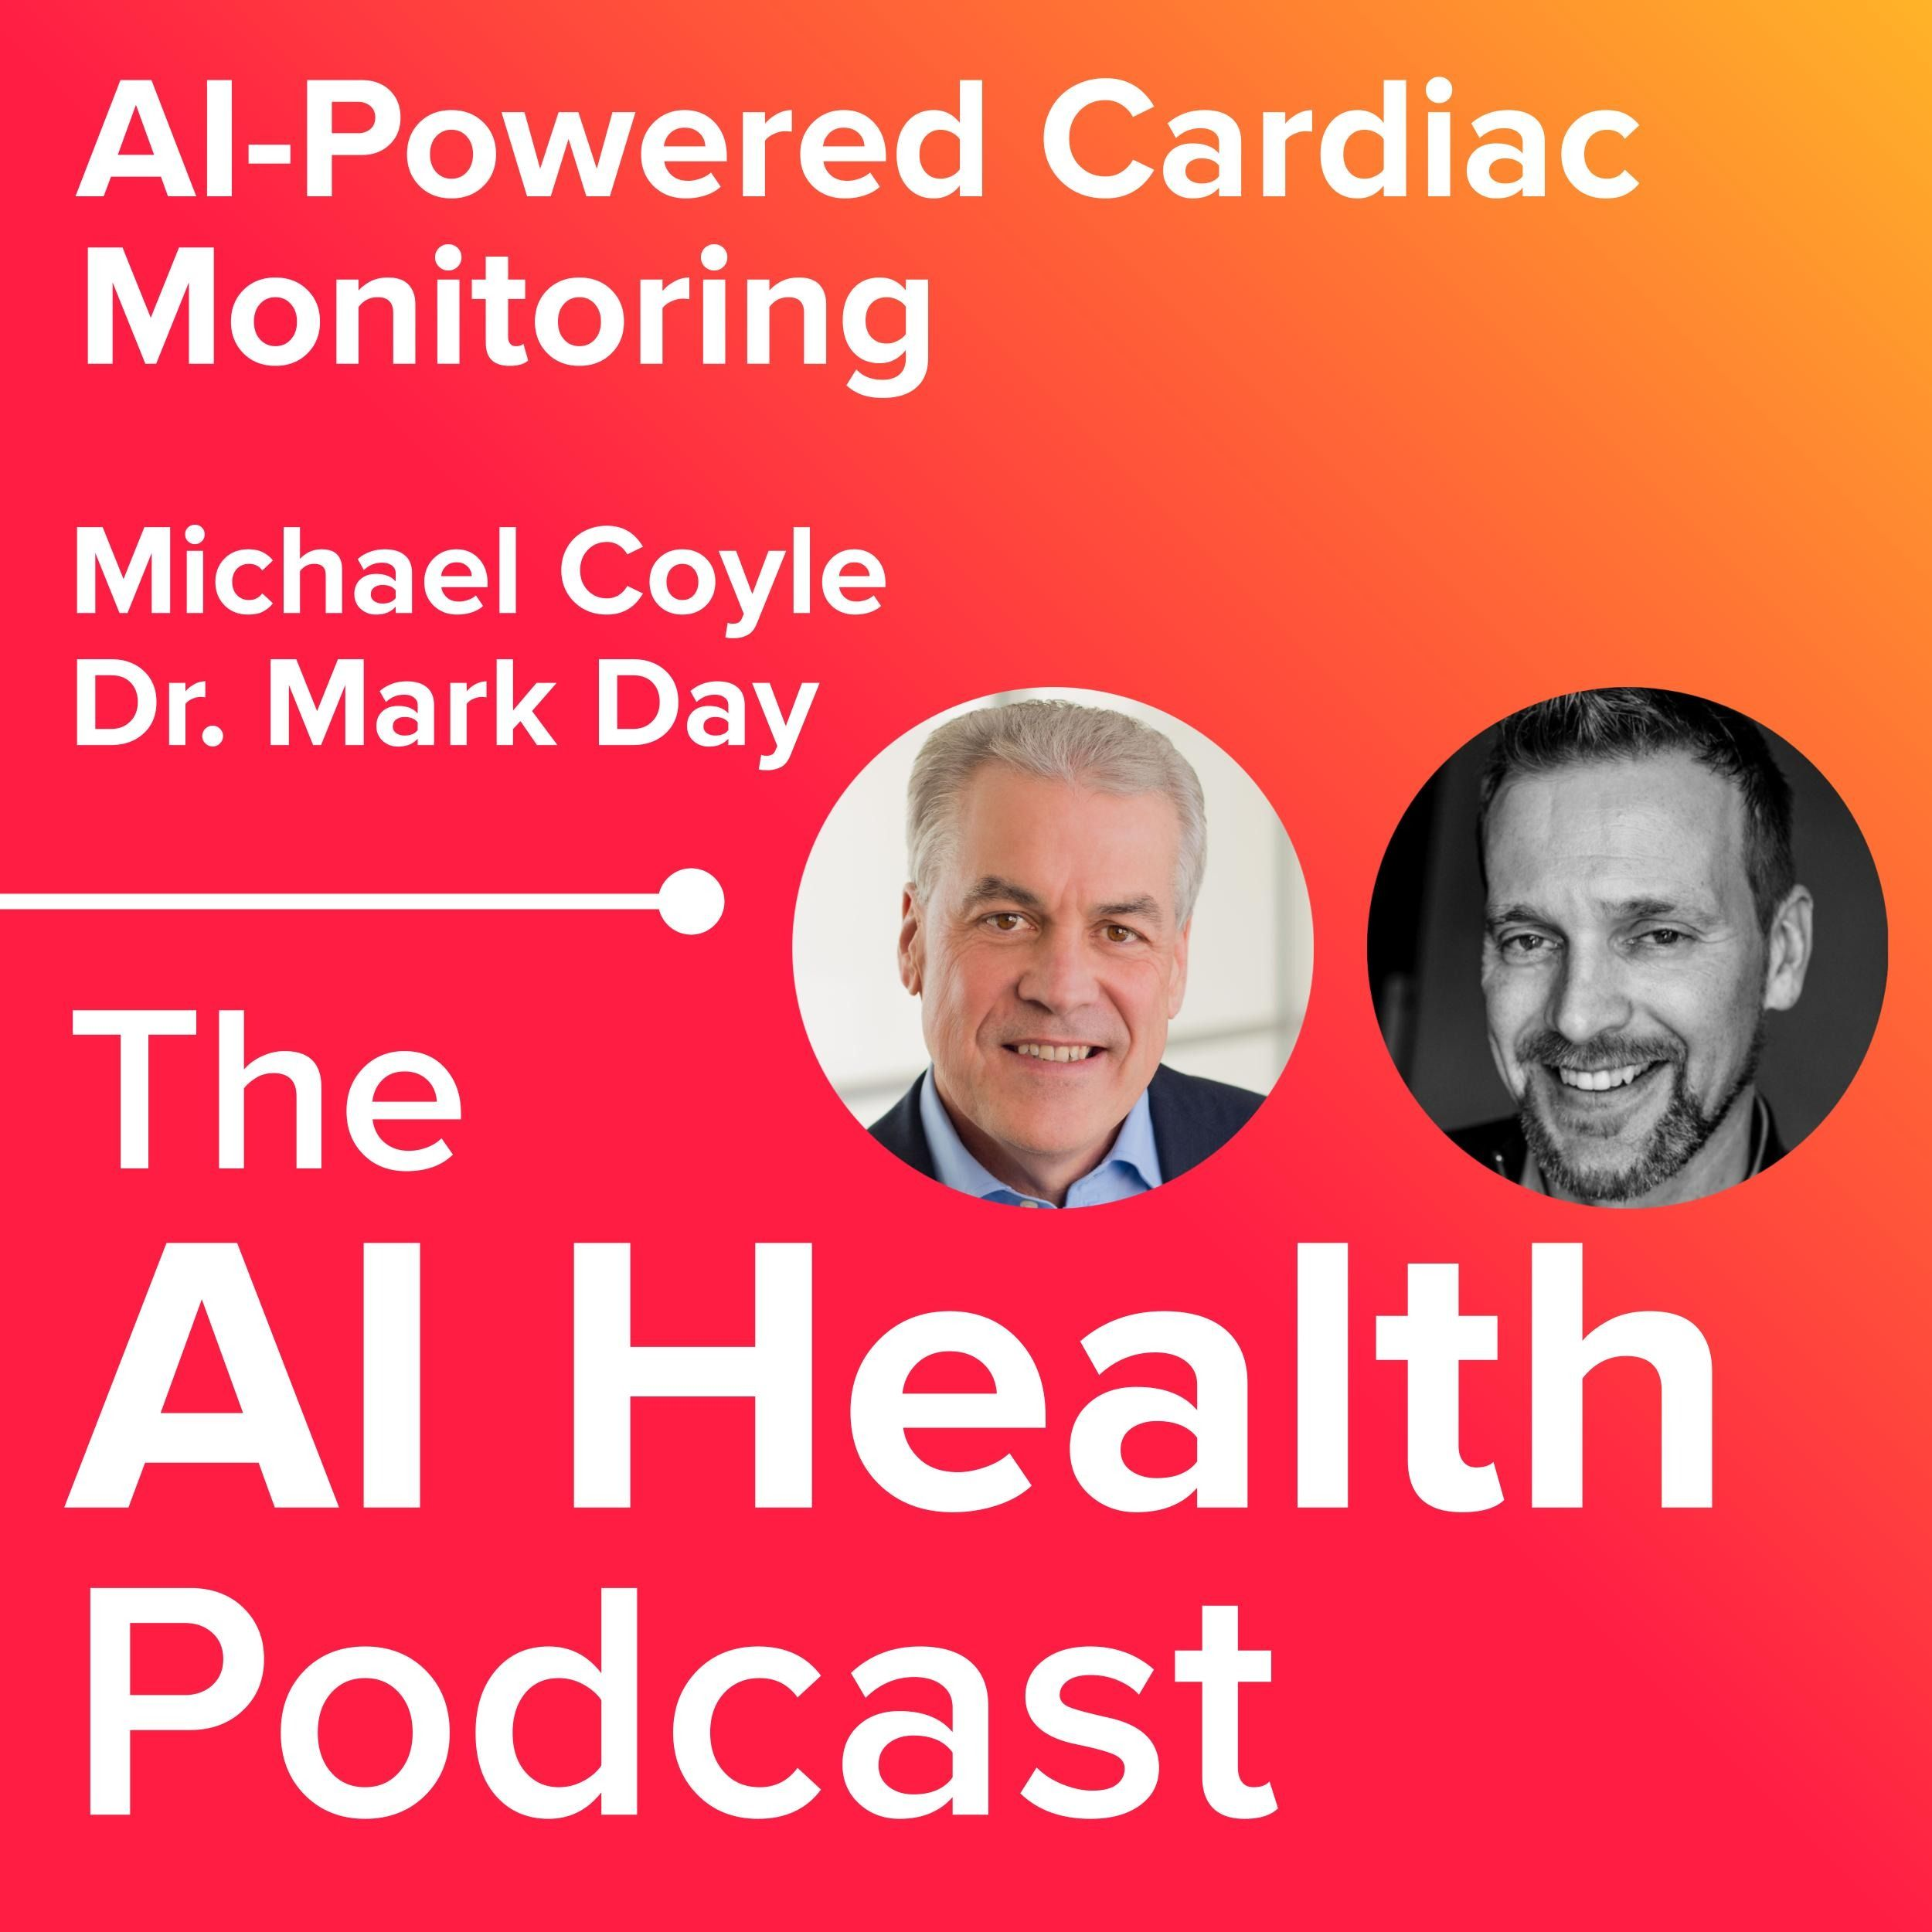 AI-Powered Cardiac Monitoring with iRhythm's Michael Coyle and Dr. Mark Day